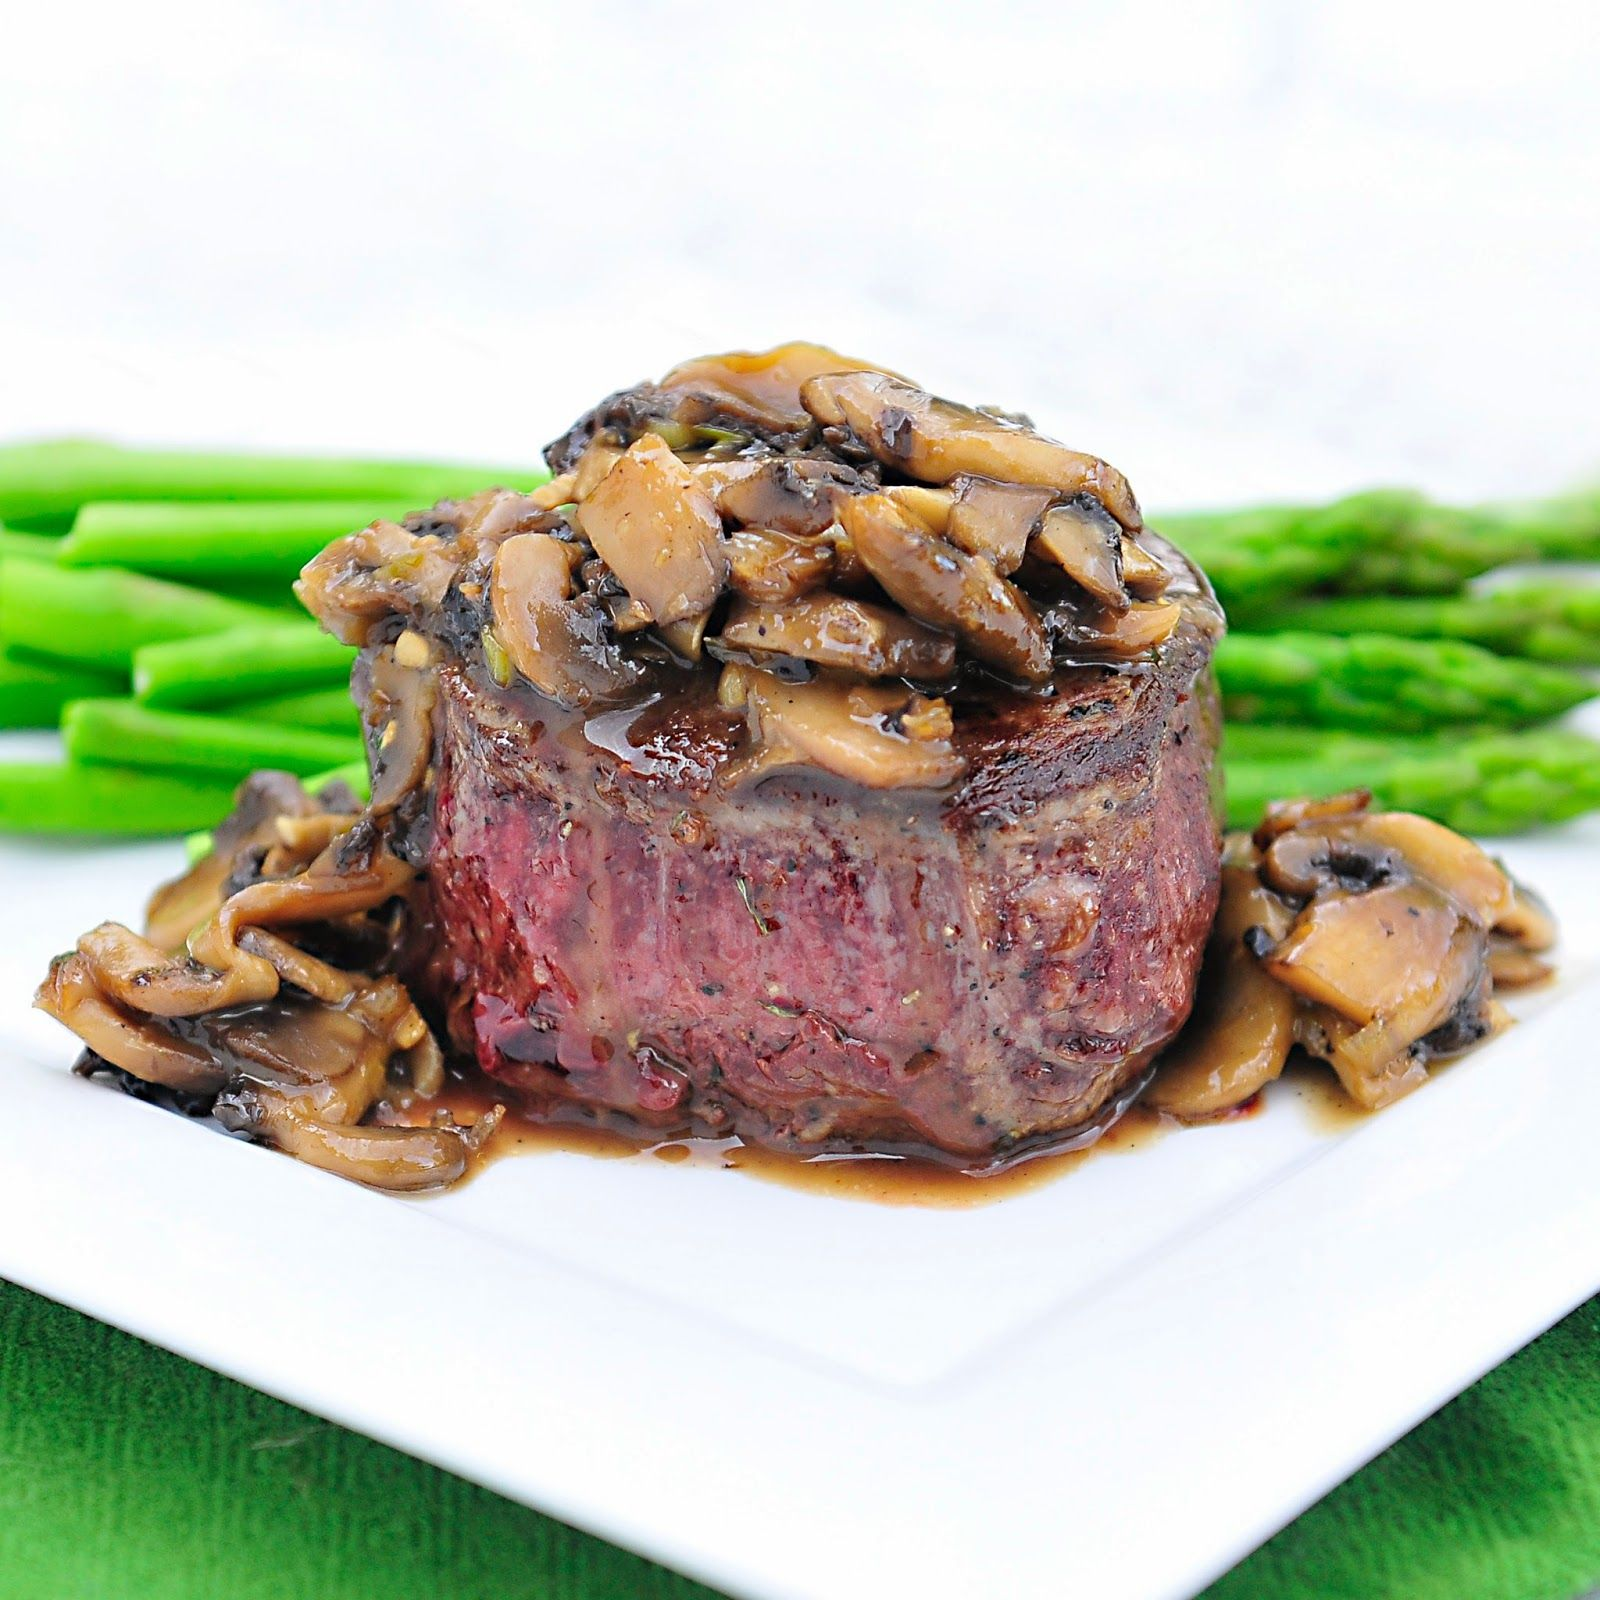 How To Cook Steak And Mushrooms In Oven